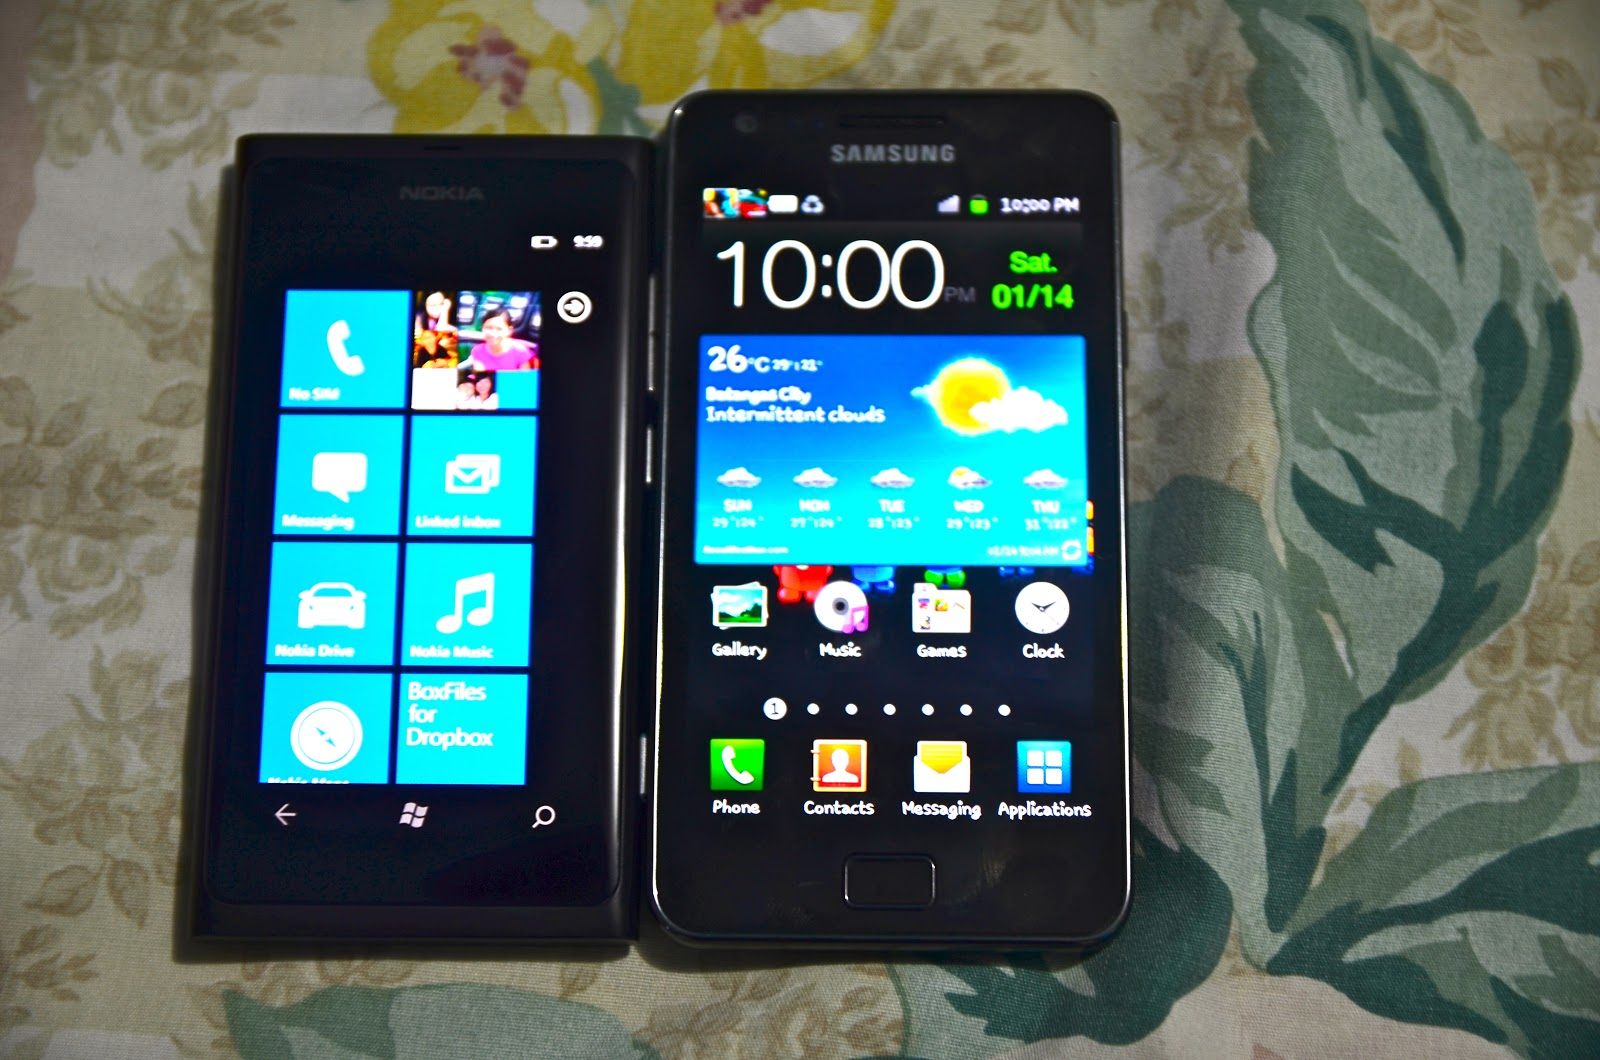 Nokia Lumia 800 w/ the Samsung Galaxy S II